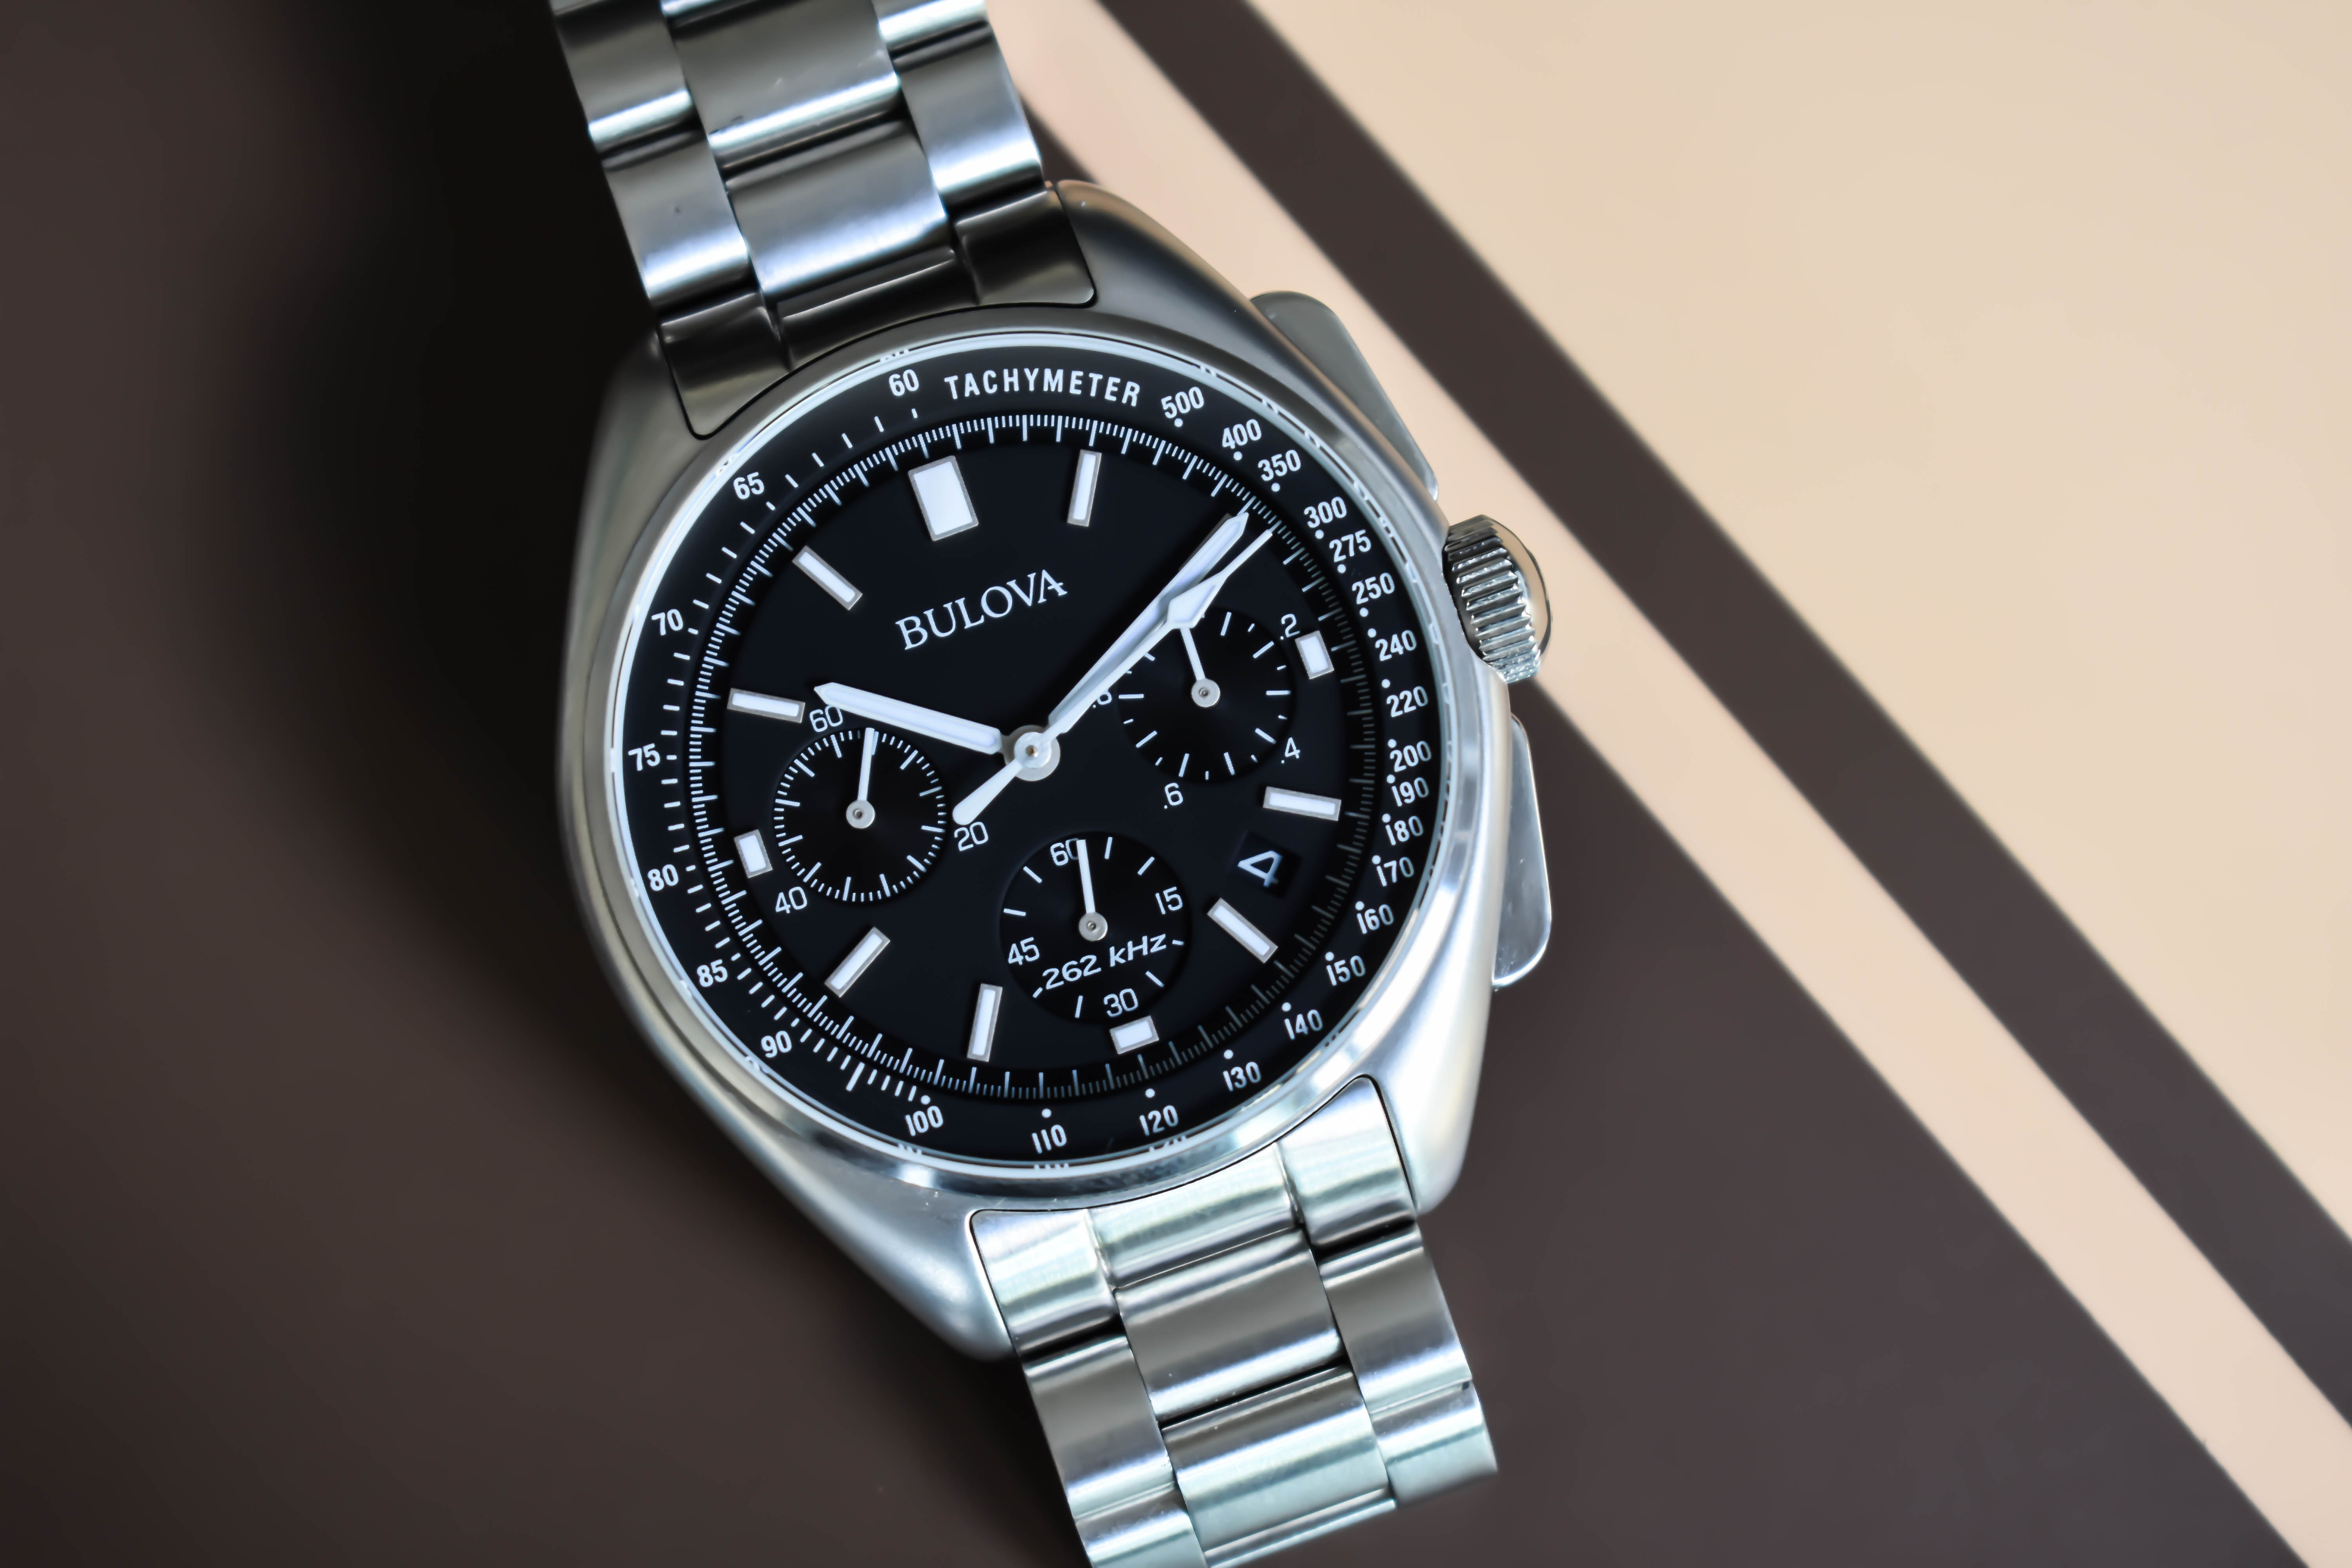 Bulova Lunar Pilot Chronograph Review Why I Sold Mine Why I Ll